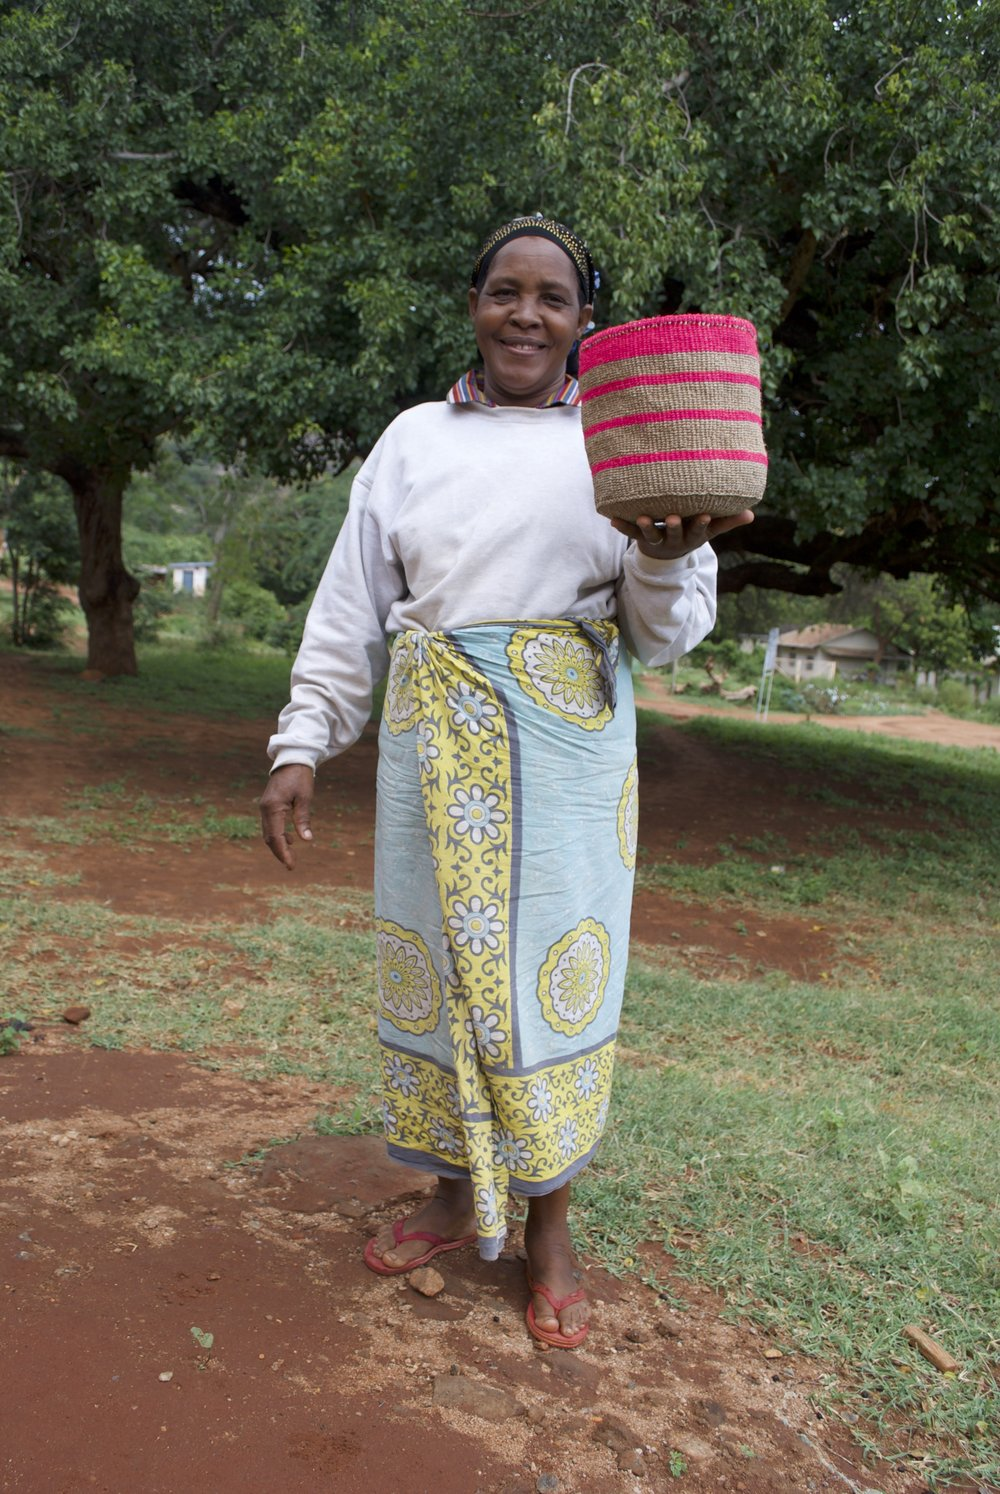 """One of the problems we as basket weavers face is a lack of market. We weave many baskets but we lack customers to sell them to.If this is looked into it will go a long way in improving our standards of living."" -  Grace, Amani Basket Weavers"